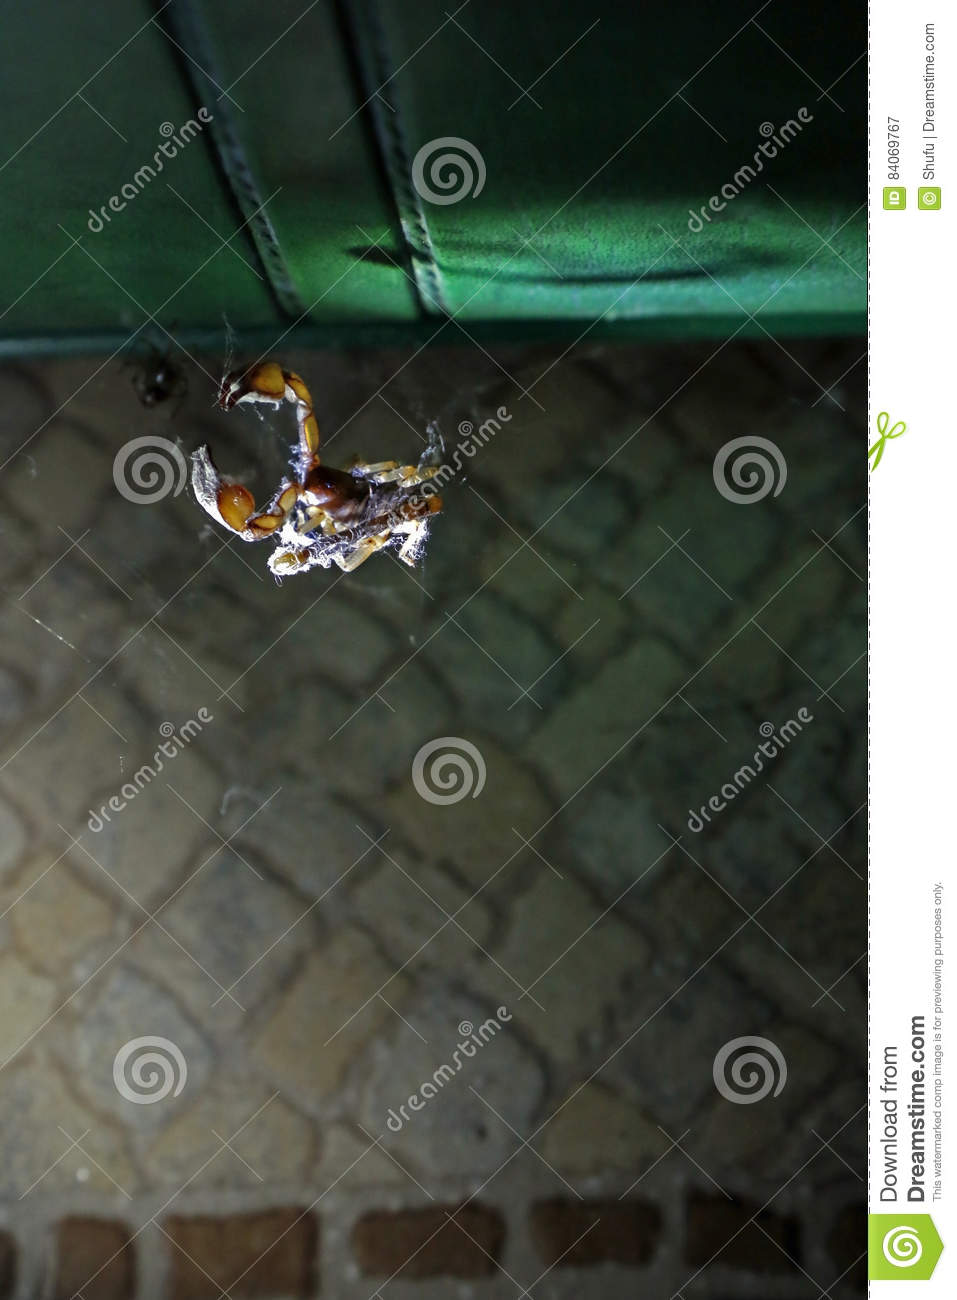 Scorpion in a spider`s web